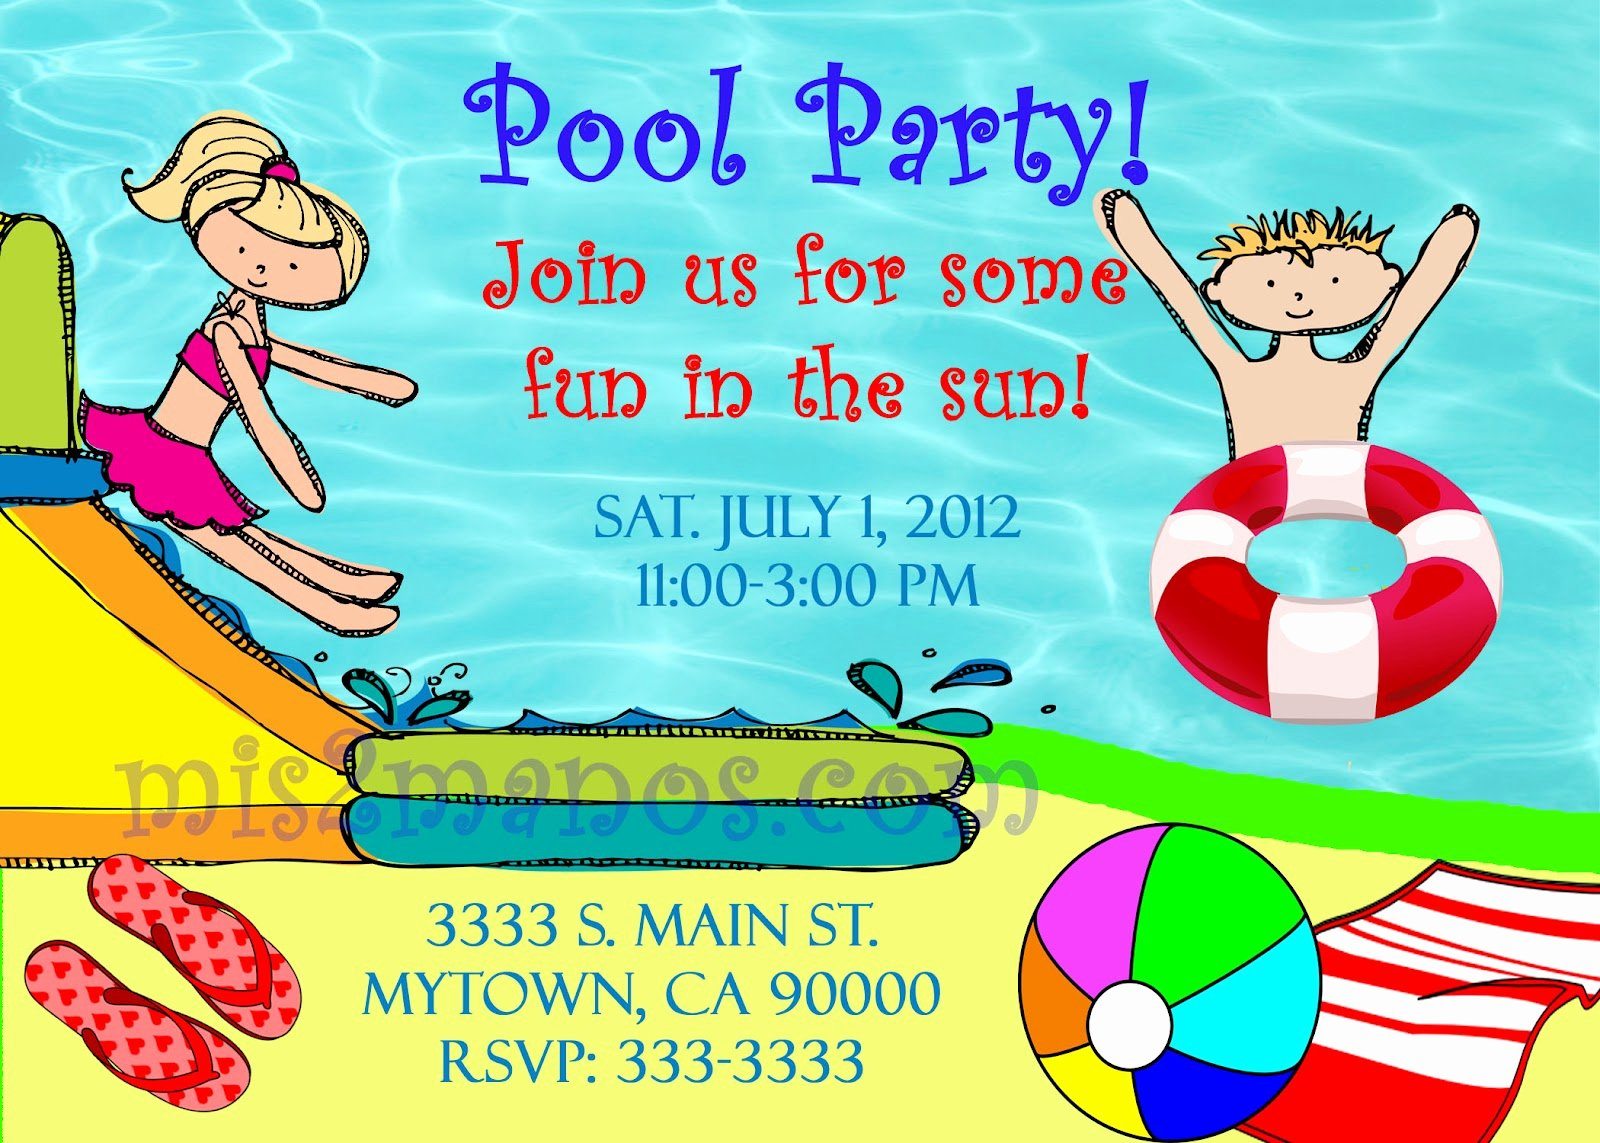 Summer Pool Party Invitations Elegant Mis 2 Manos Made by My Hands Summer Pool Party Invitations